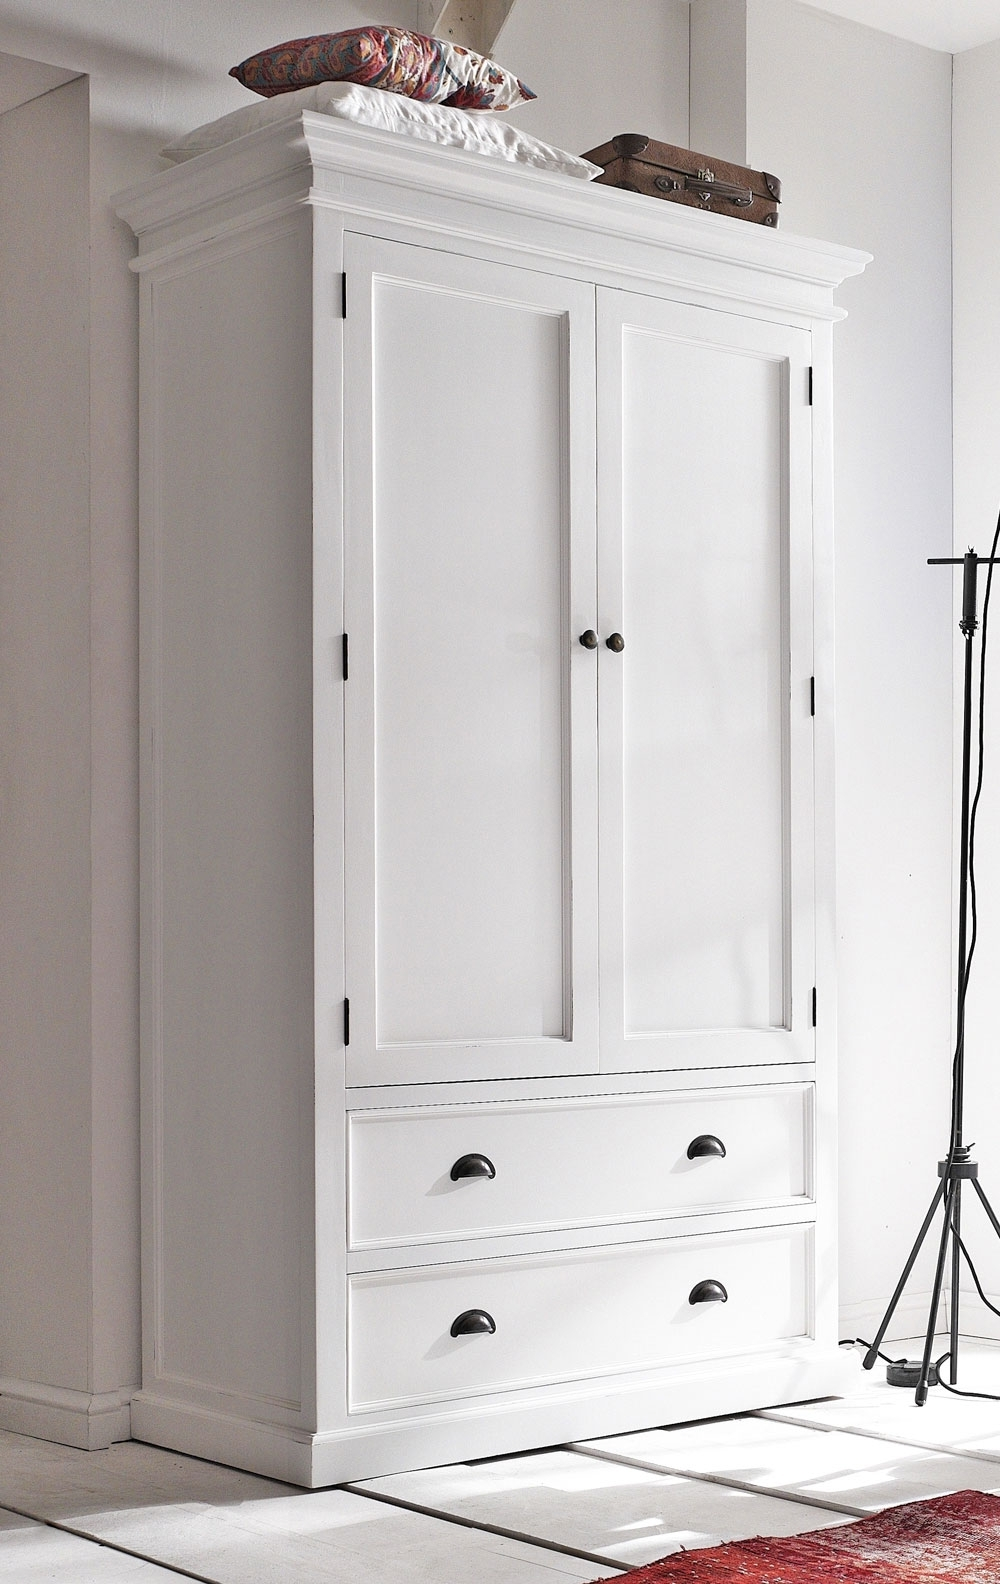 2017 White Antique Wardrobes Pertaining To 13 Vintage Closet Sets For Your Secret Fashionable Sanctuary (Gallery 13 of 15)